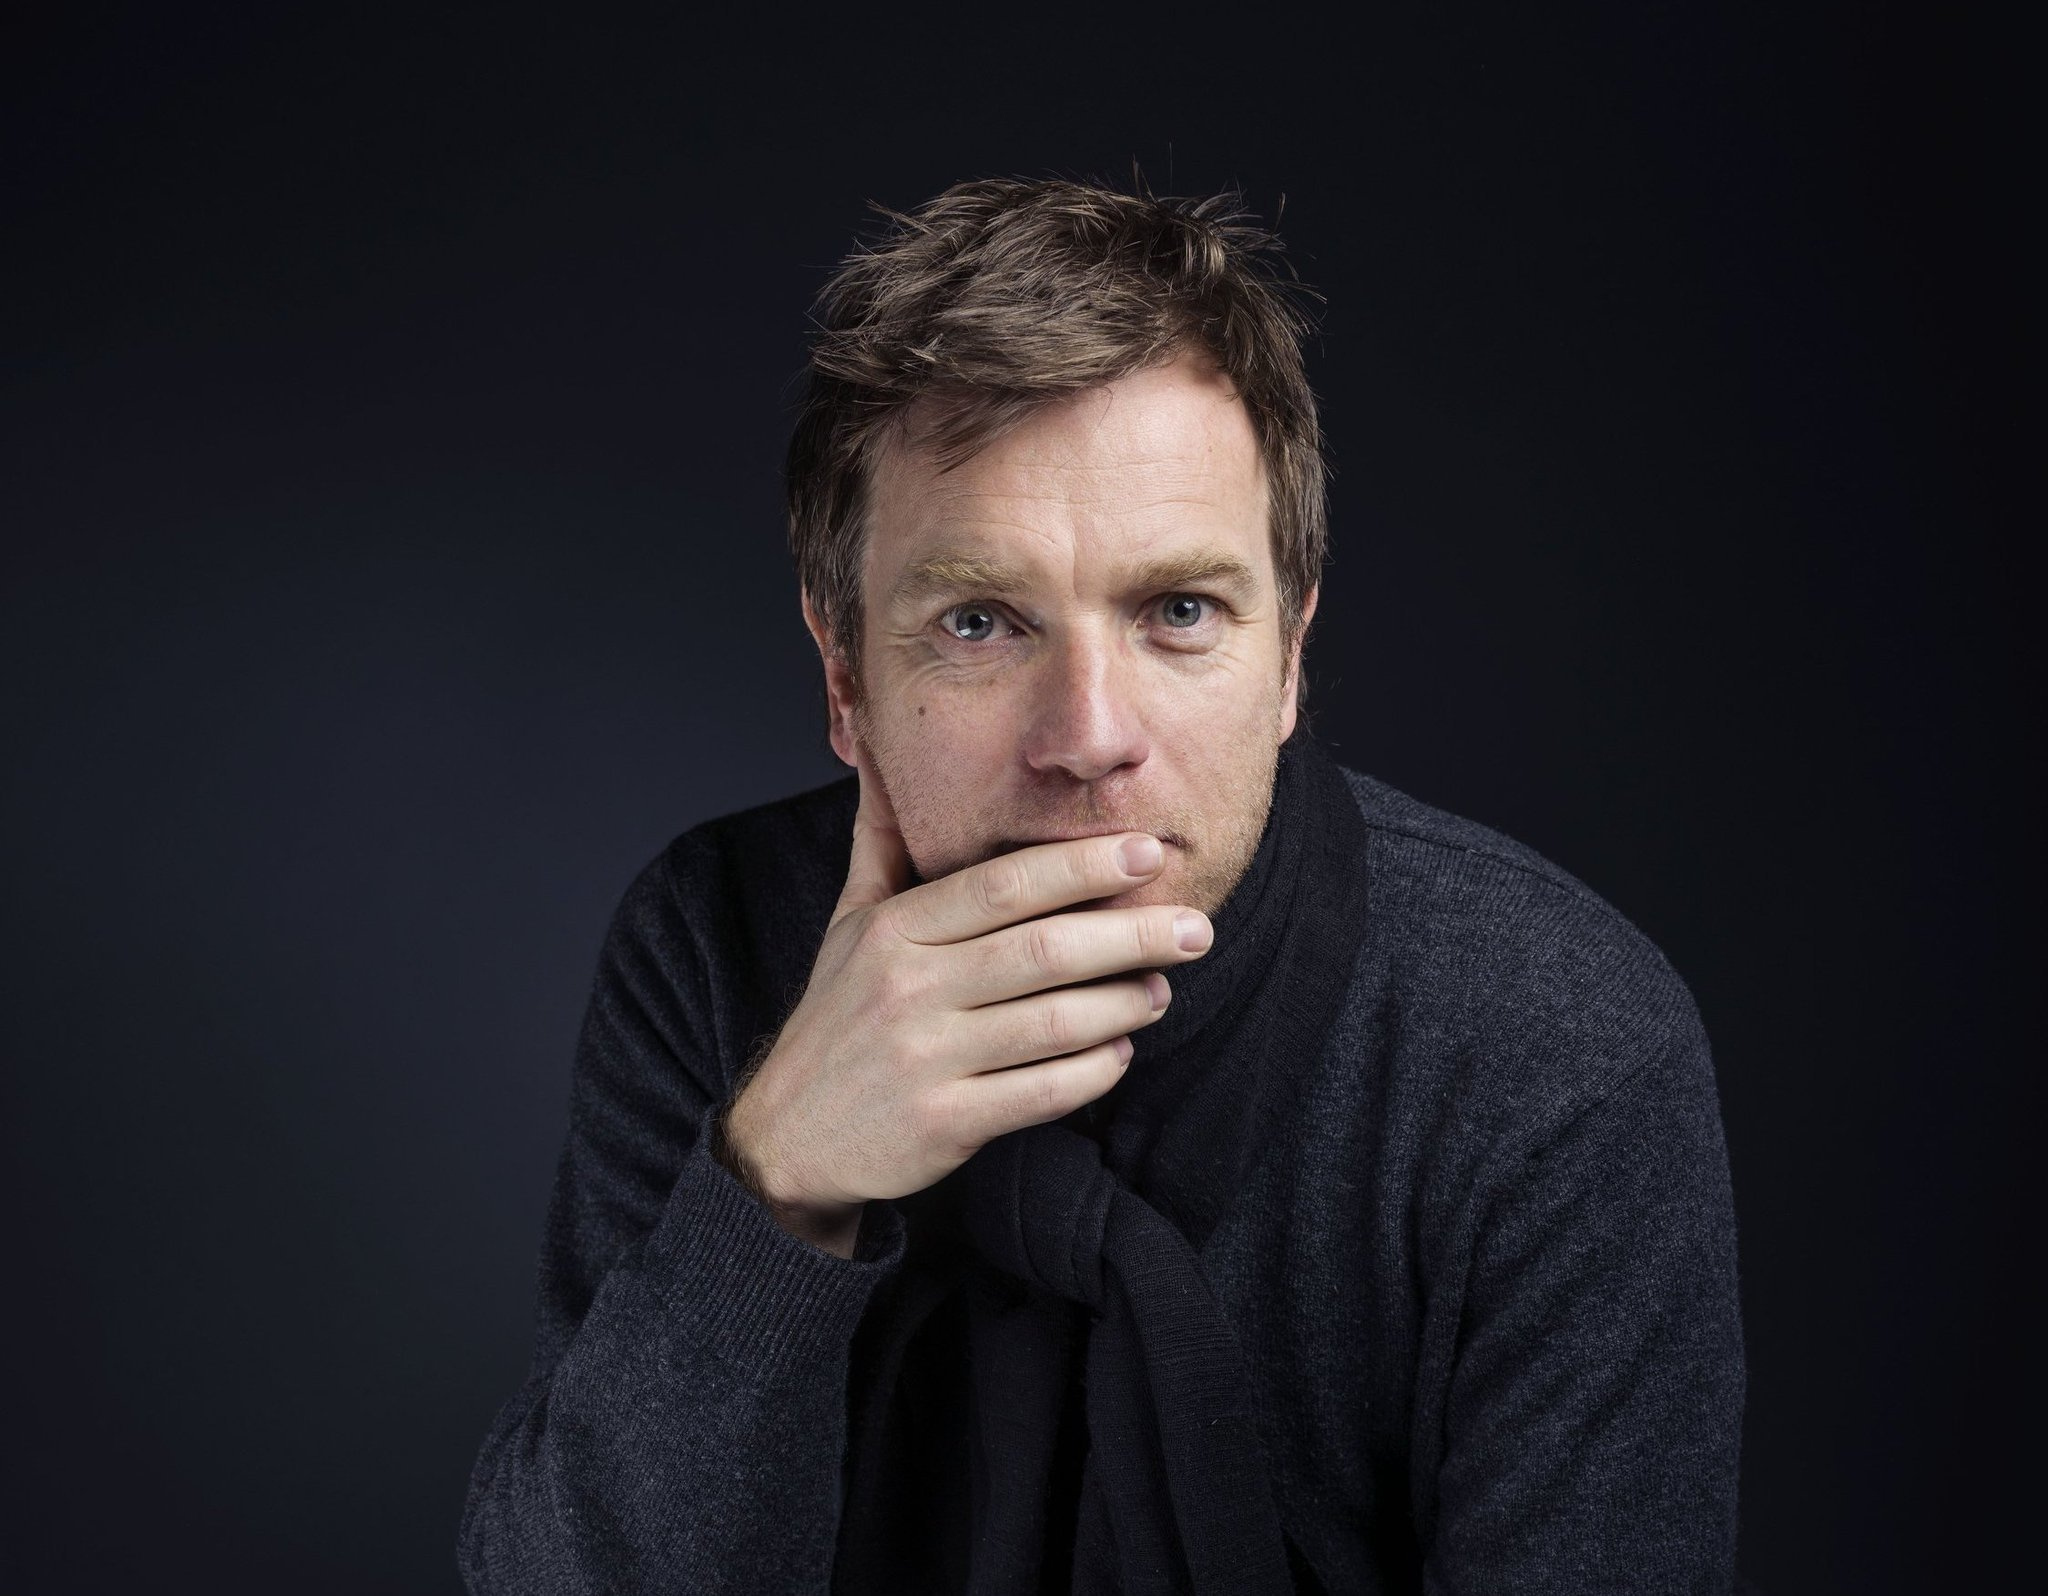 ewan mcgregor come what mayewan mcgregor fargo, ewan mcgregor instagram, ewan mcgregor 2016, ewan mcgregor star wars, ewan mcgregor gif, ewan mcgregor 2017, ewan mcgregor young, ewan mcgregor come what may, ewan mcgregor height, ewan mcgregor photoshoot, ewan mcgregor family, ewan mcgregor moulin rouge, ewan mcgregor фильмография, ewan mcgregor your song, ewan mcgregor daughter, ewan mcgregor your song скачать, ewan mcgregor личная жизнь, ewan mcgregor vk, ewan mcgregor на игле, ewan mcgregor movies